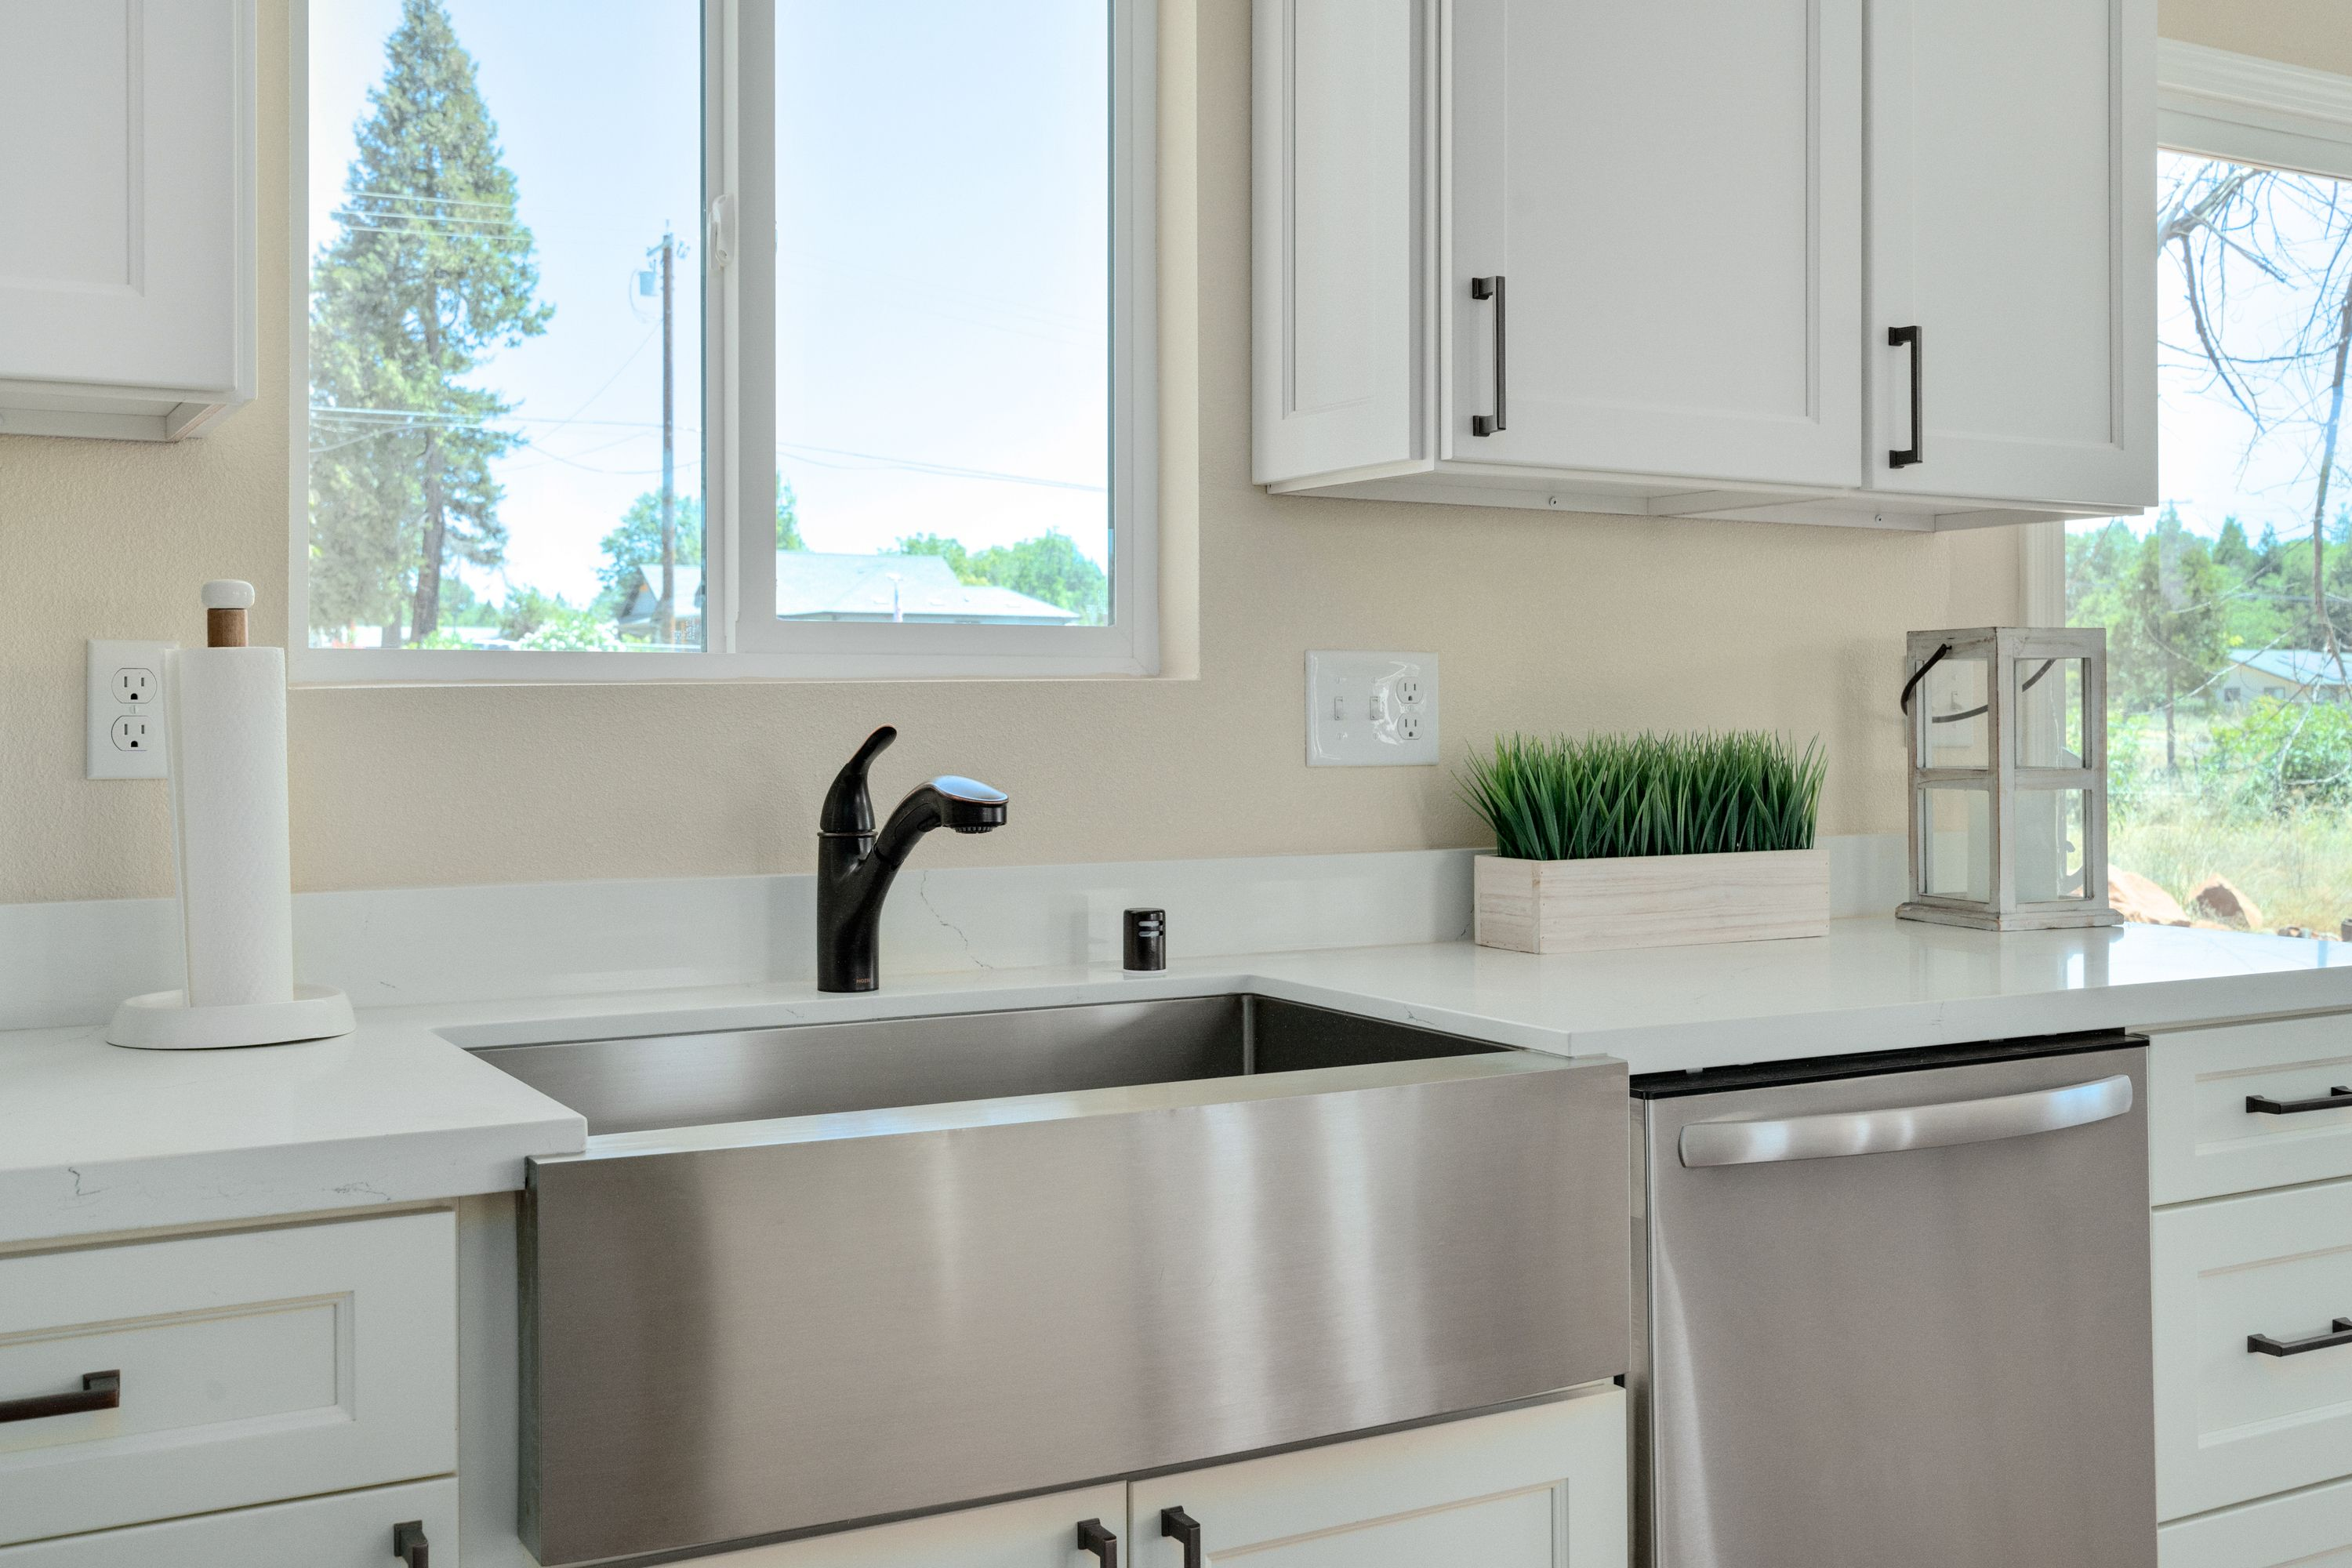 Kitchen featured in the 1372 Parkway Dr By Silvermark Luxury Homes in Chico, CA